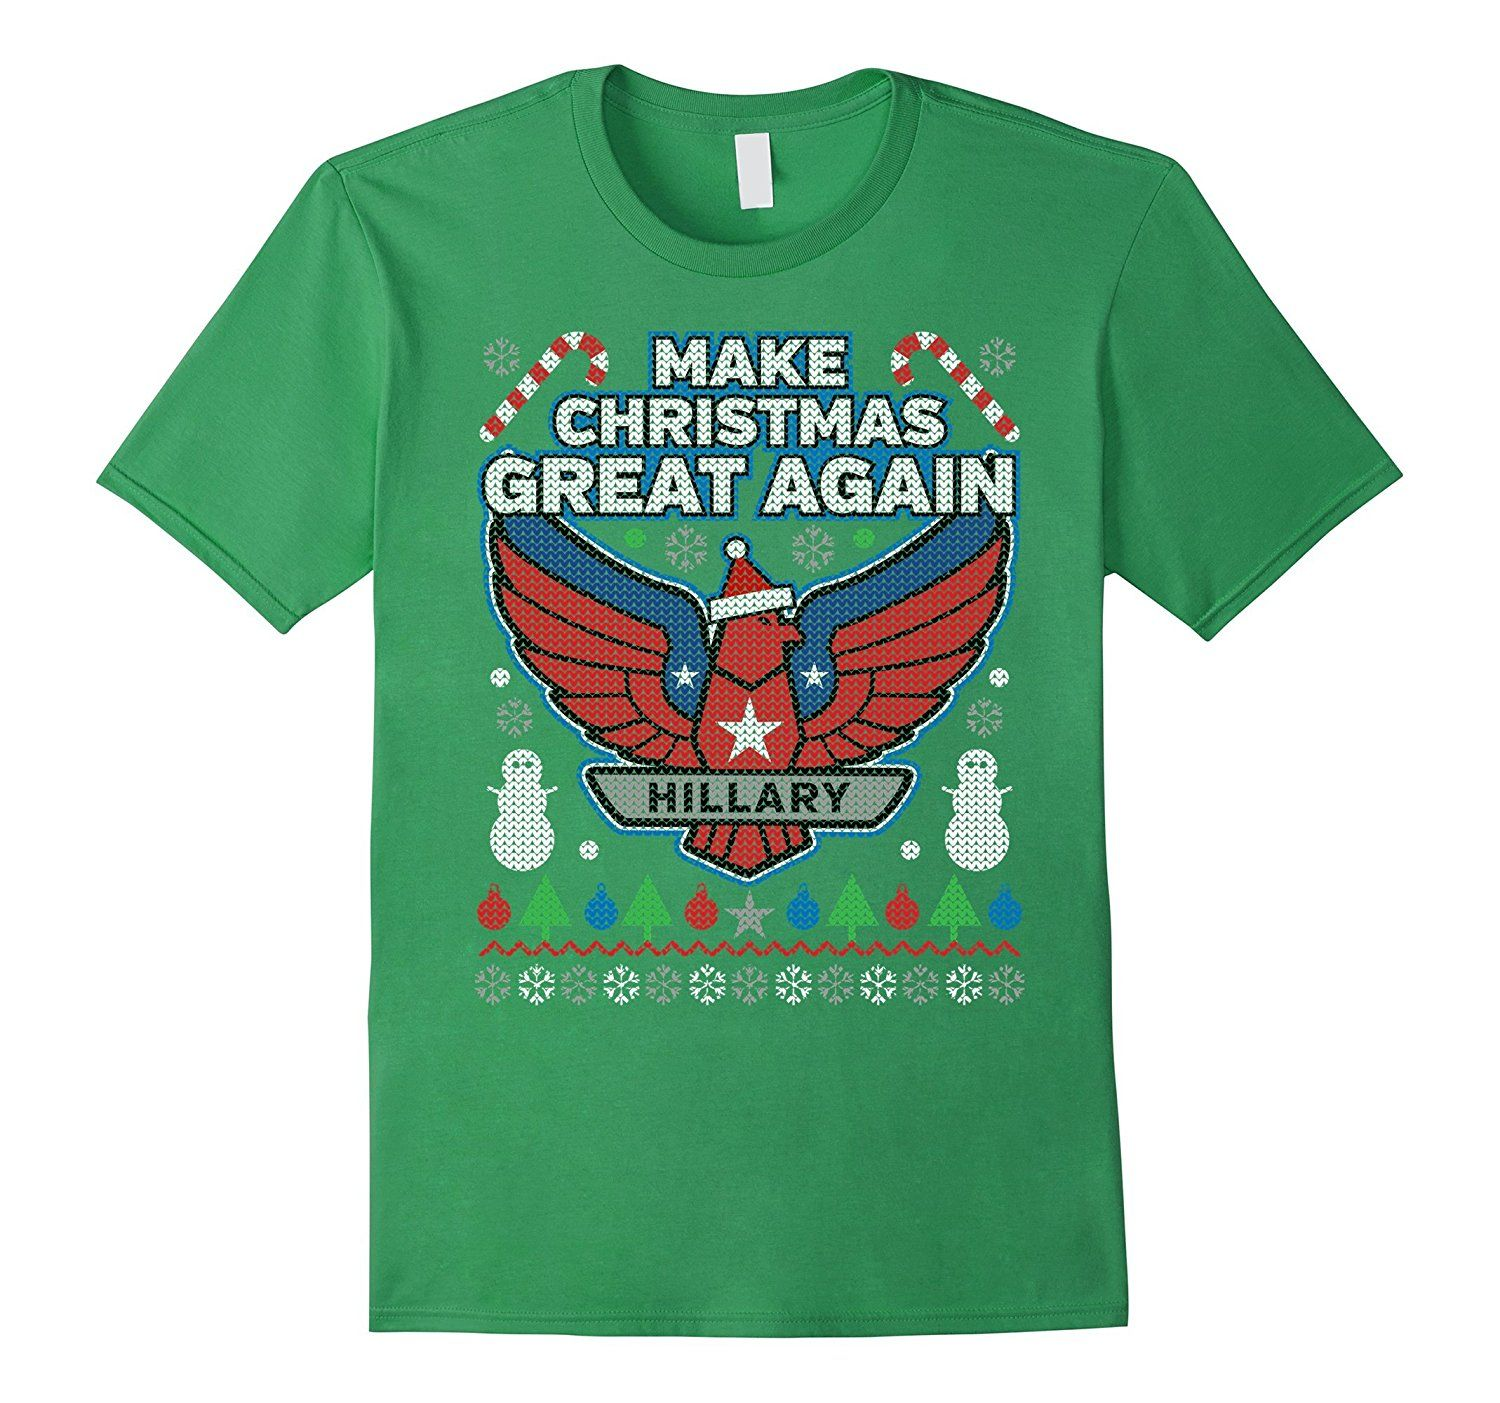 Host a Hillary Clinton ugly Christmas sweaters party in your ...